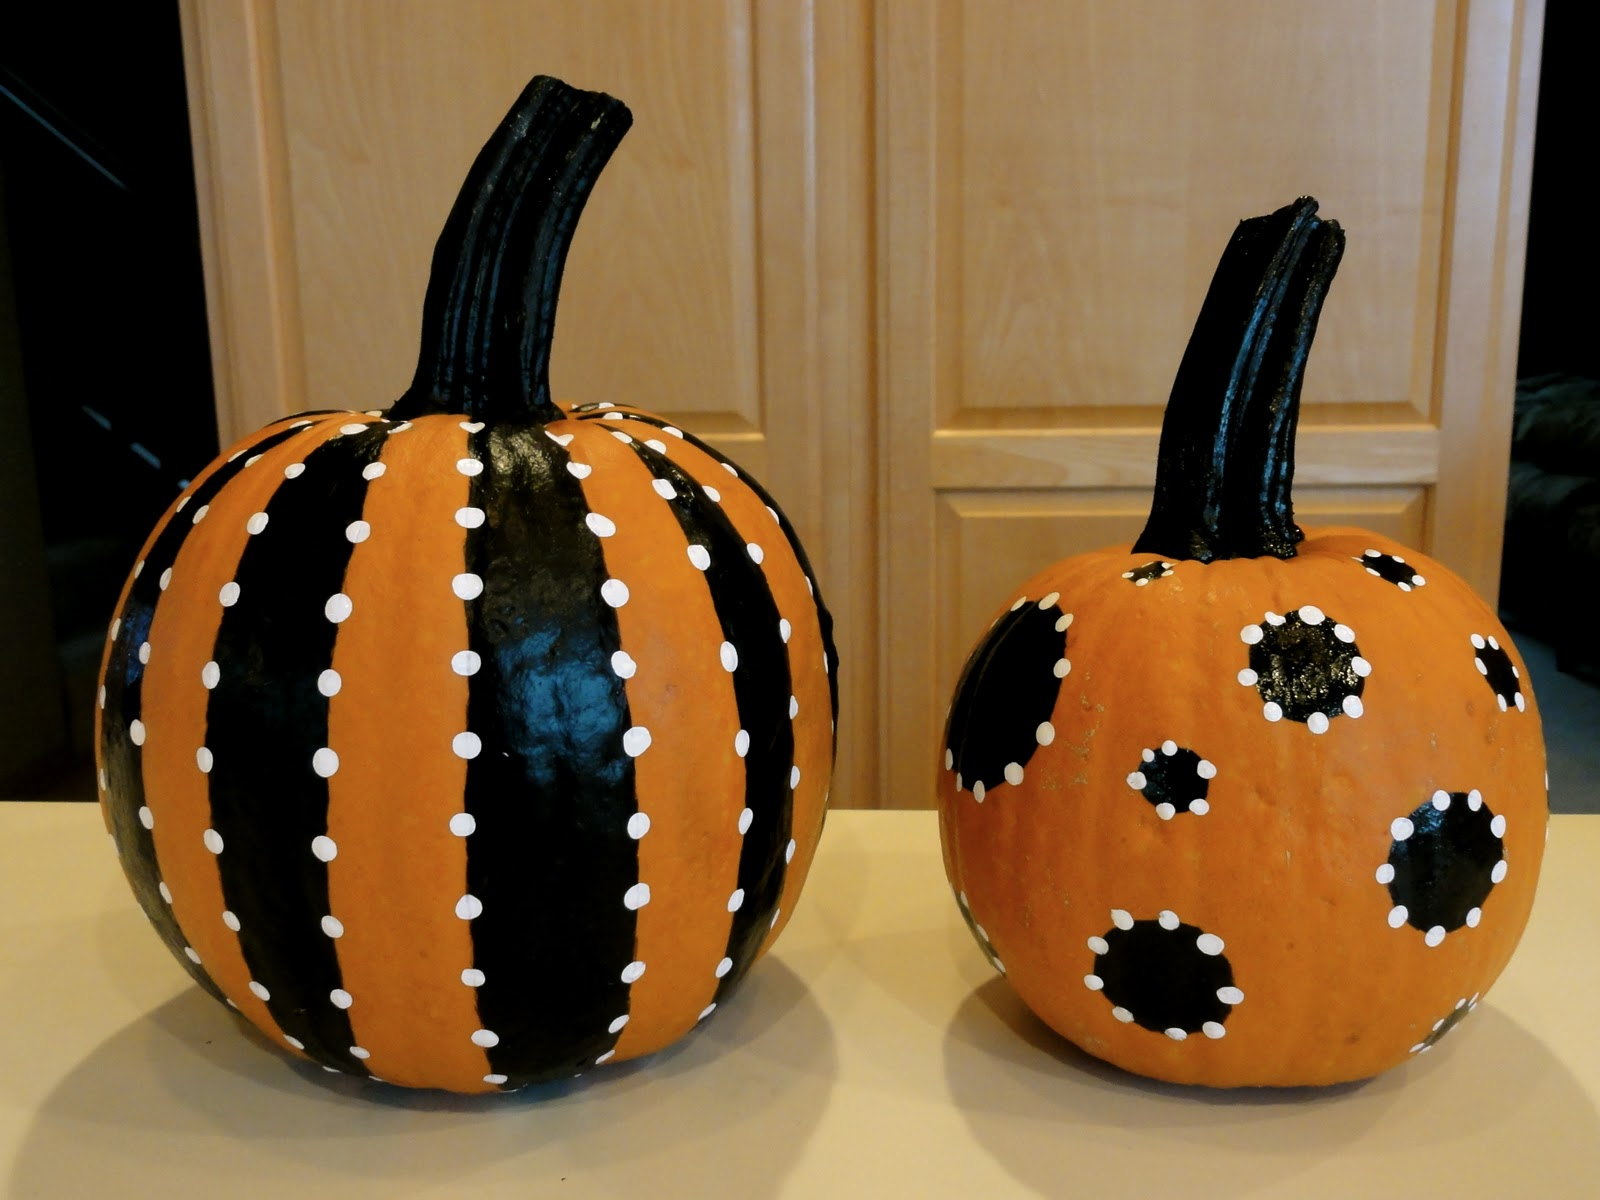 Gallery for cute girly painted pumpkins - Cute pumpkin painting ideas ...